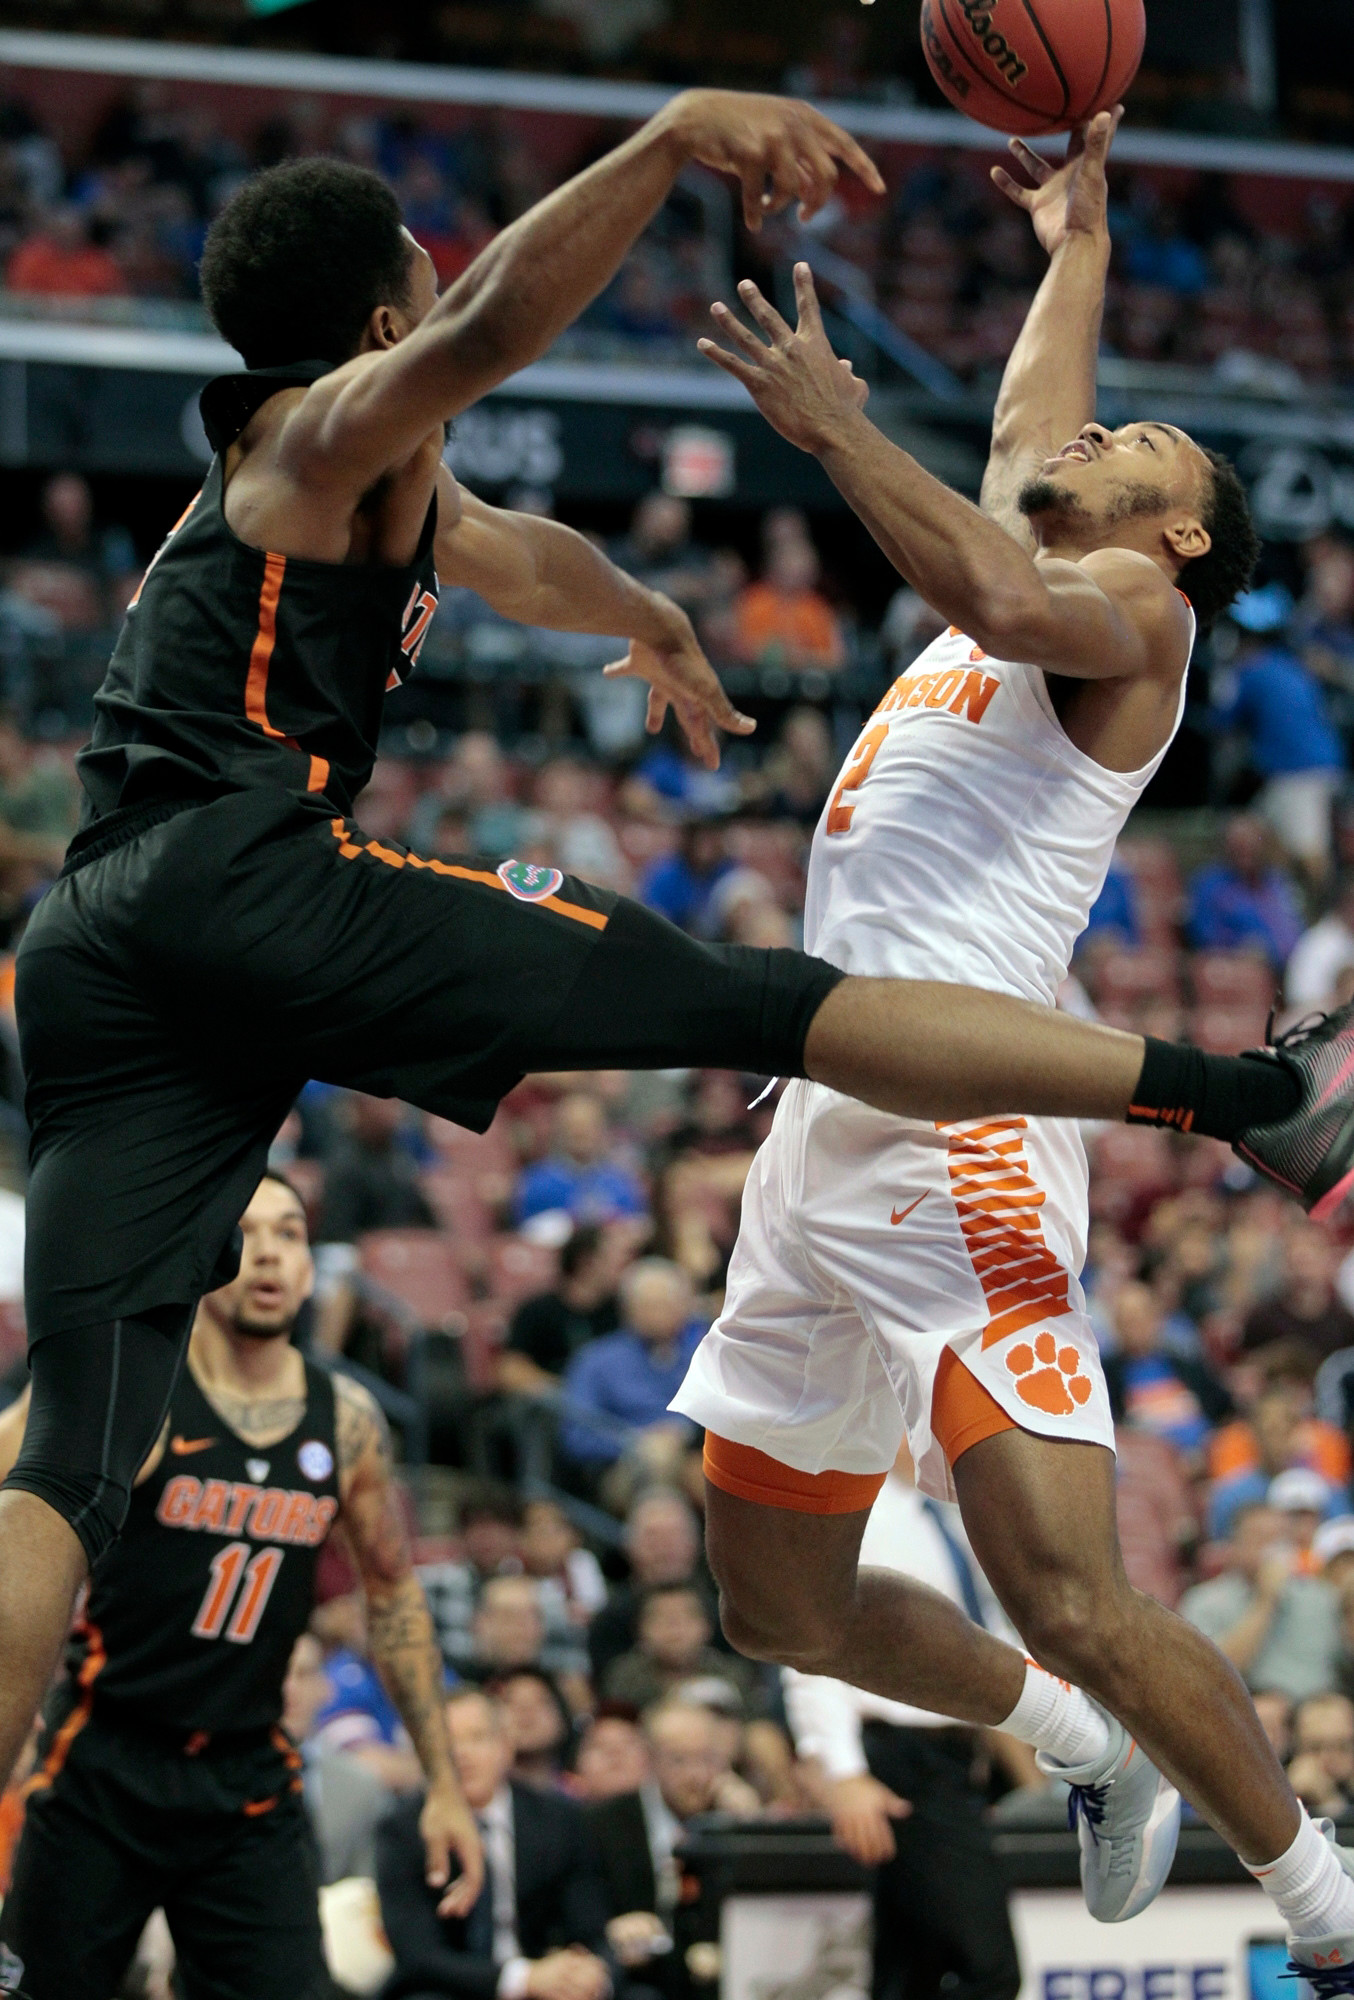 Clemson's Marcquise Reed (2) shoots over Florida's KeVaughn Allen during the Tigers' 71-69 victory on Saturday in the Orange Bowl Classic in Sunrise, Florida. Clemson plays host to rival South Carolina today.